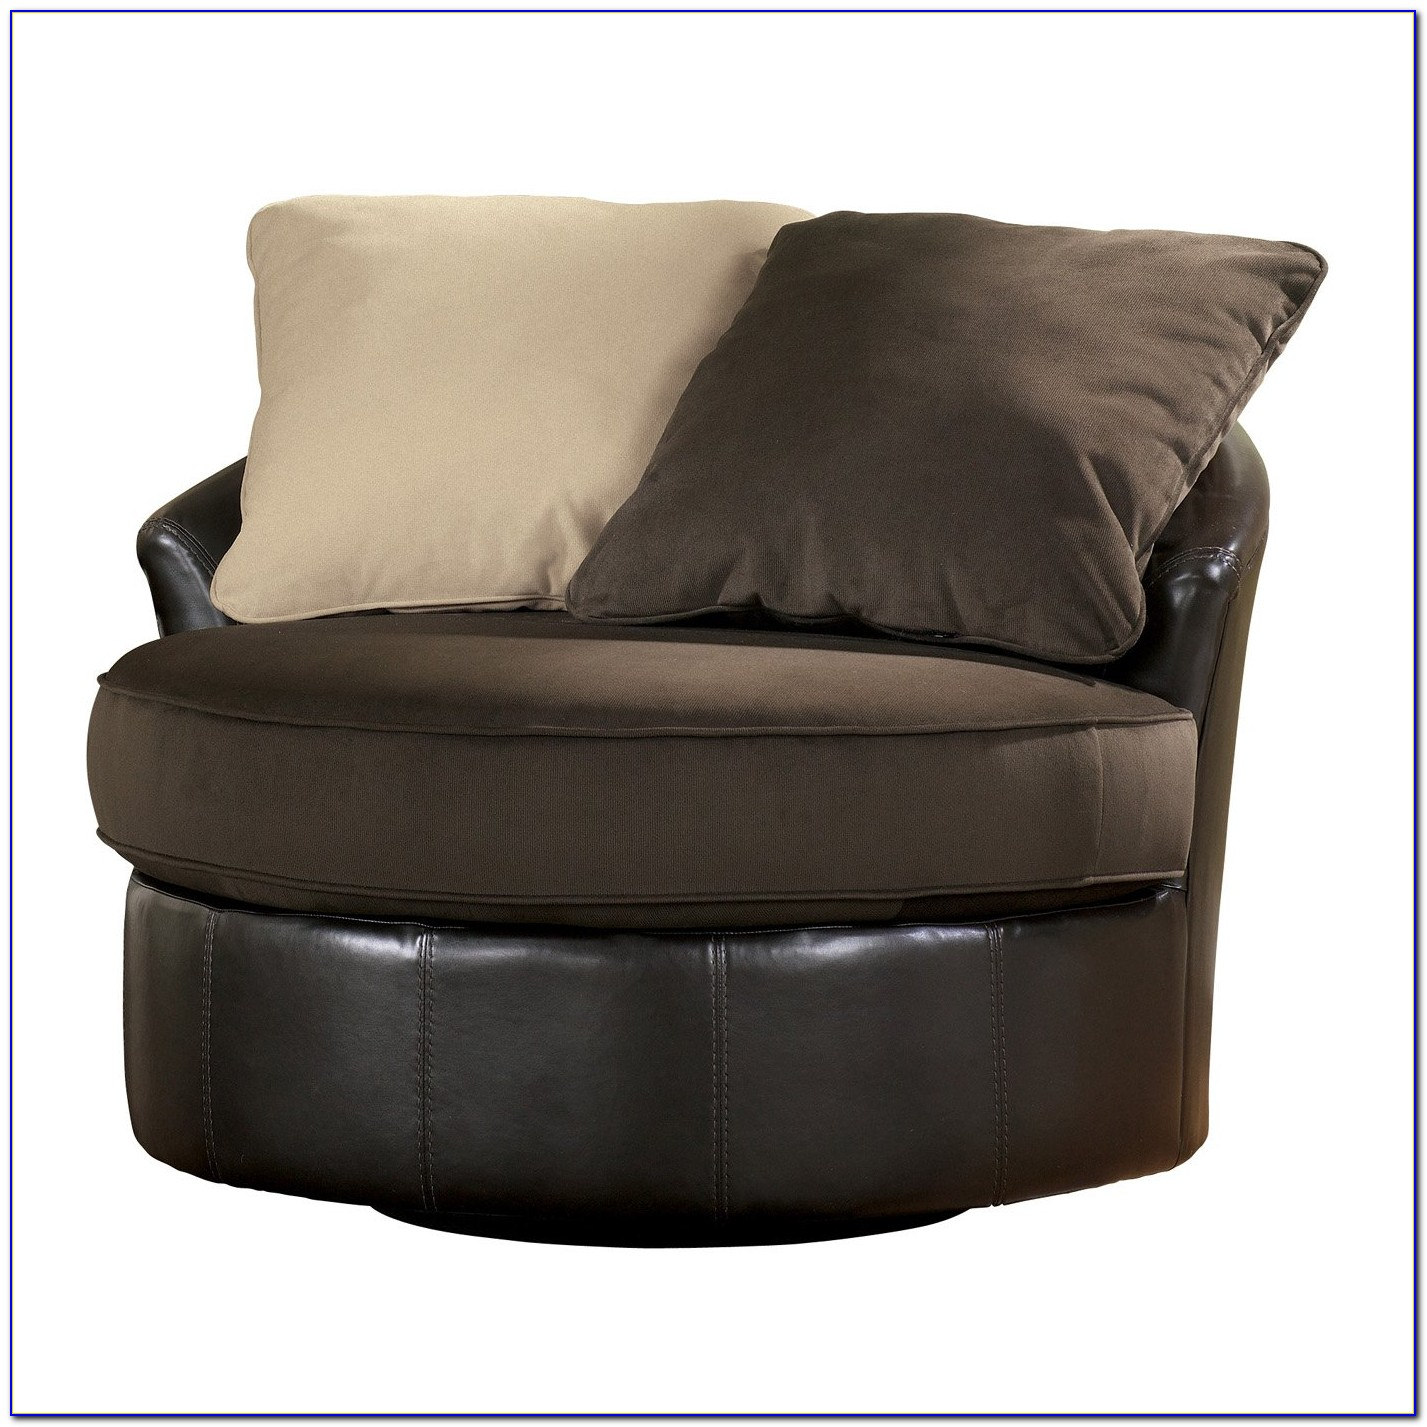 Round Swivel Chair American Furniture